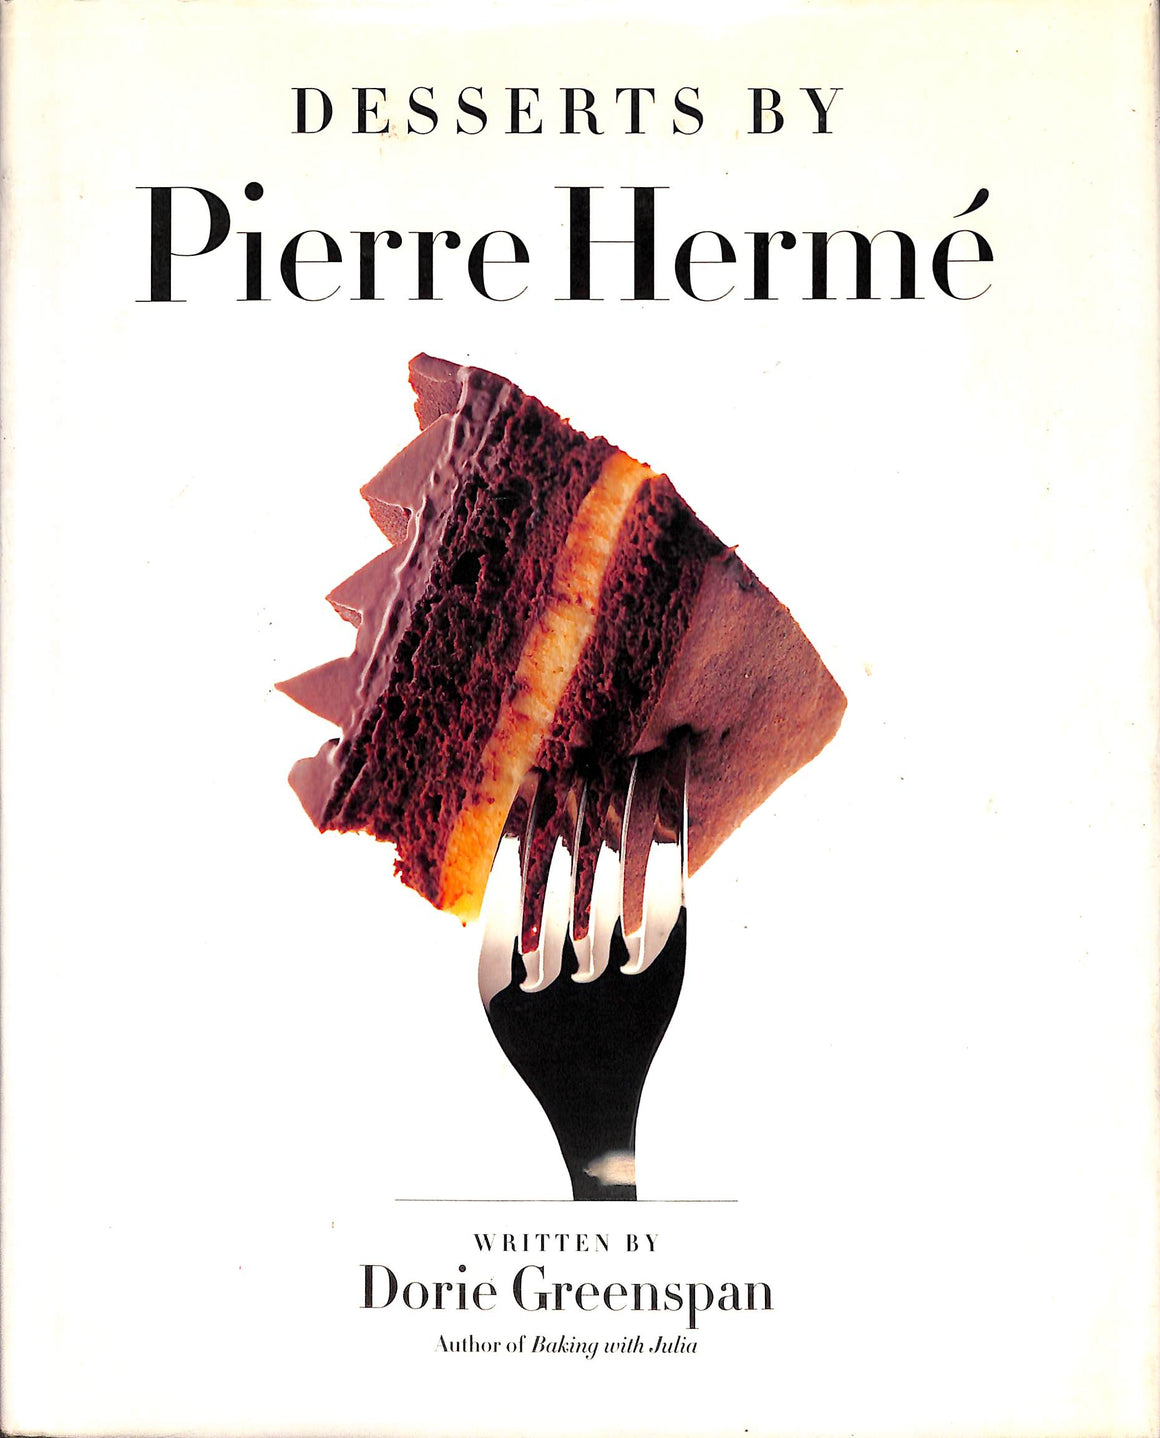 Desserts by Pierre Herme (Signed!)